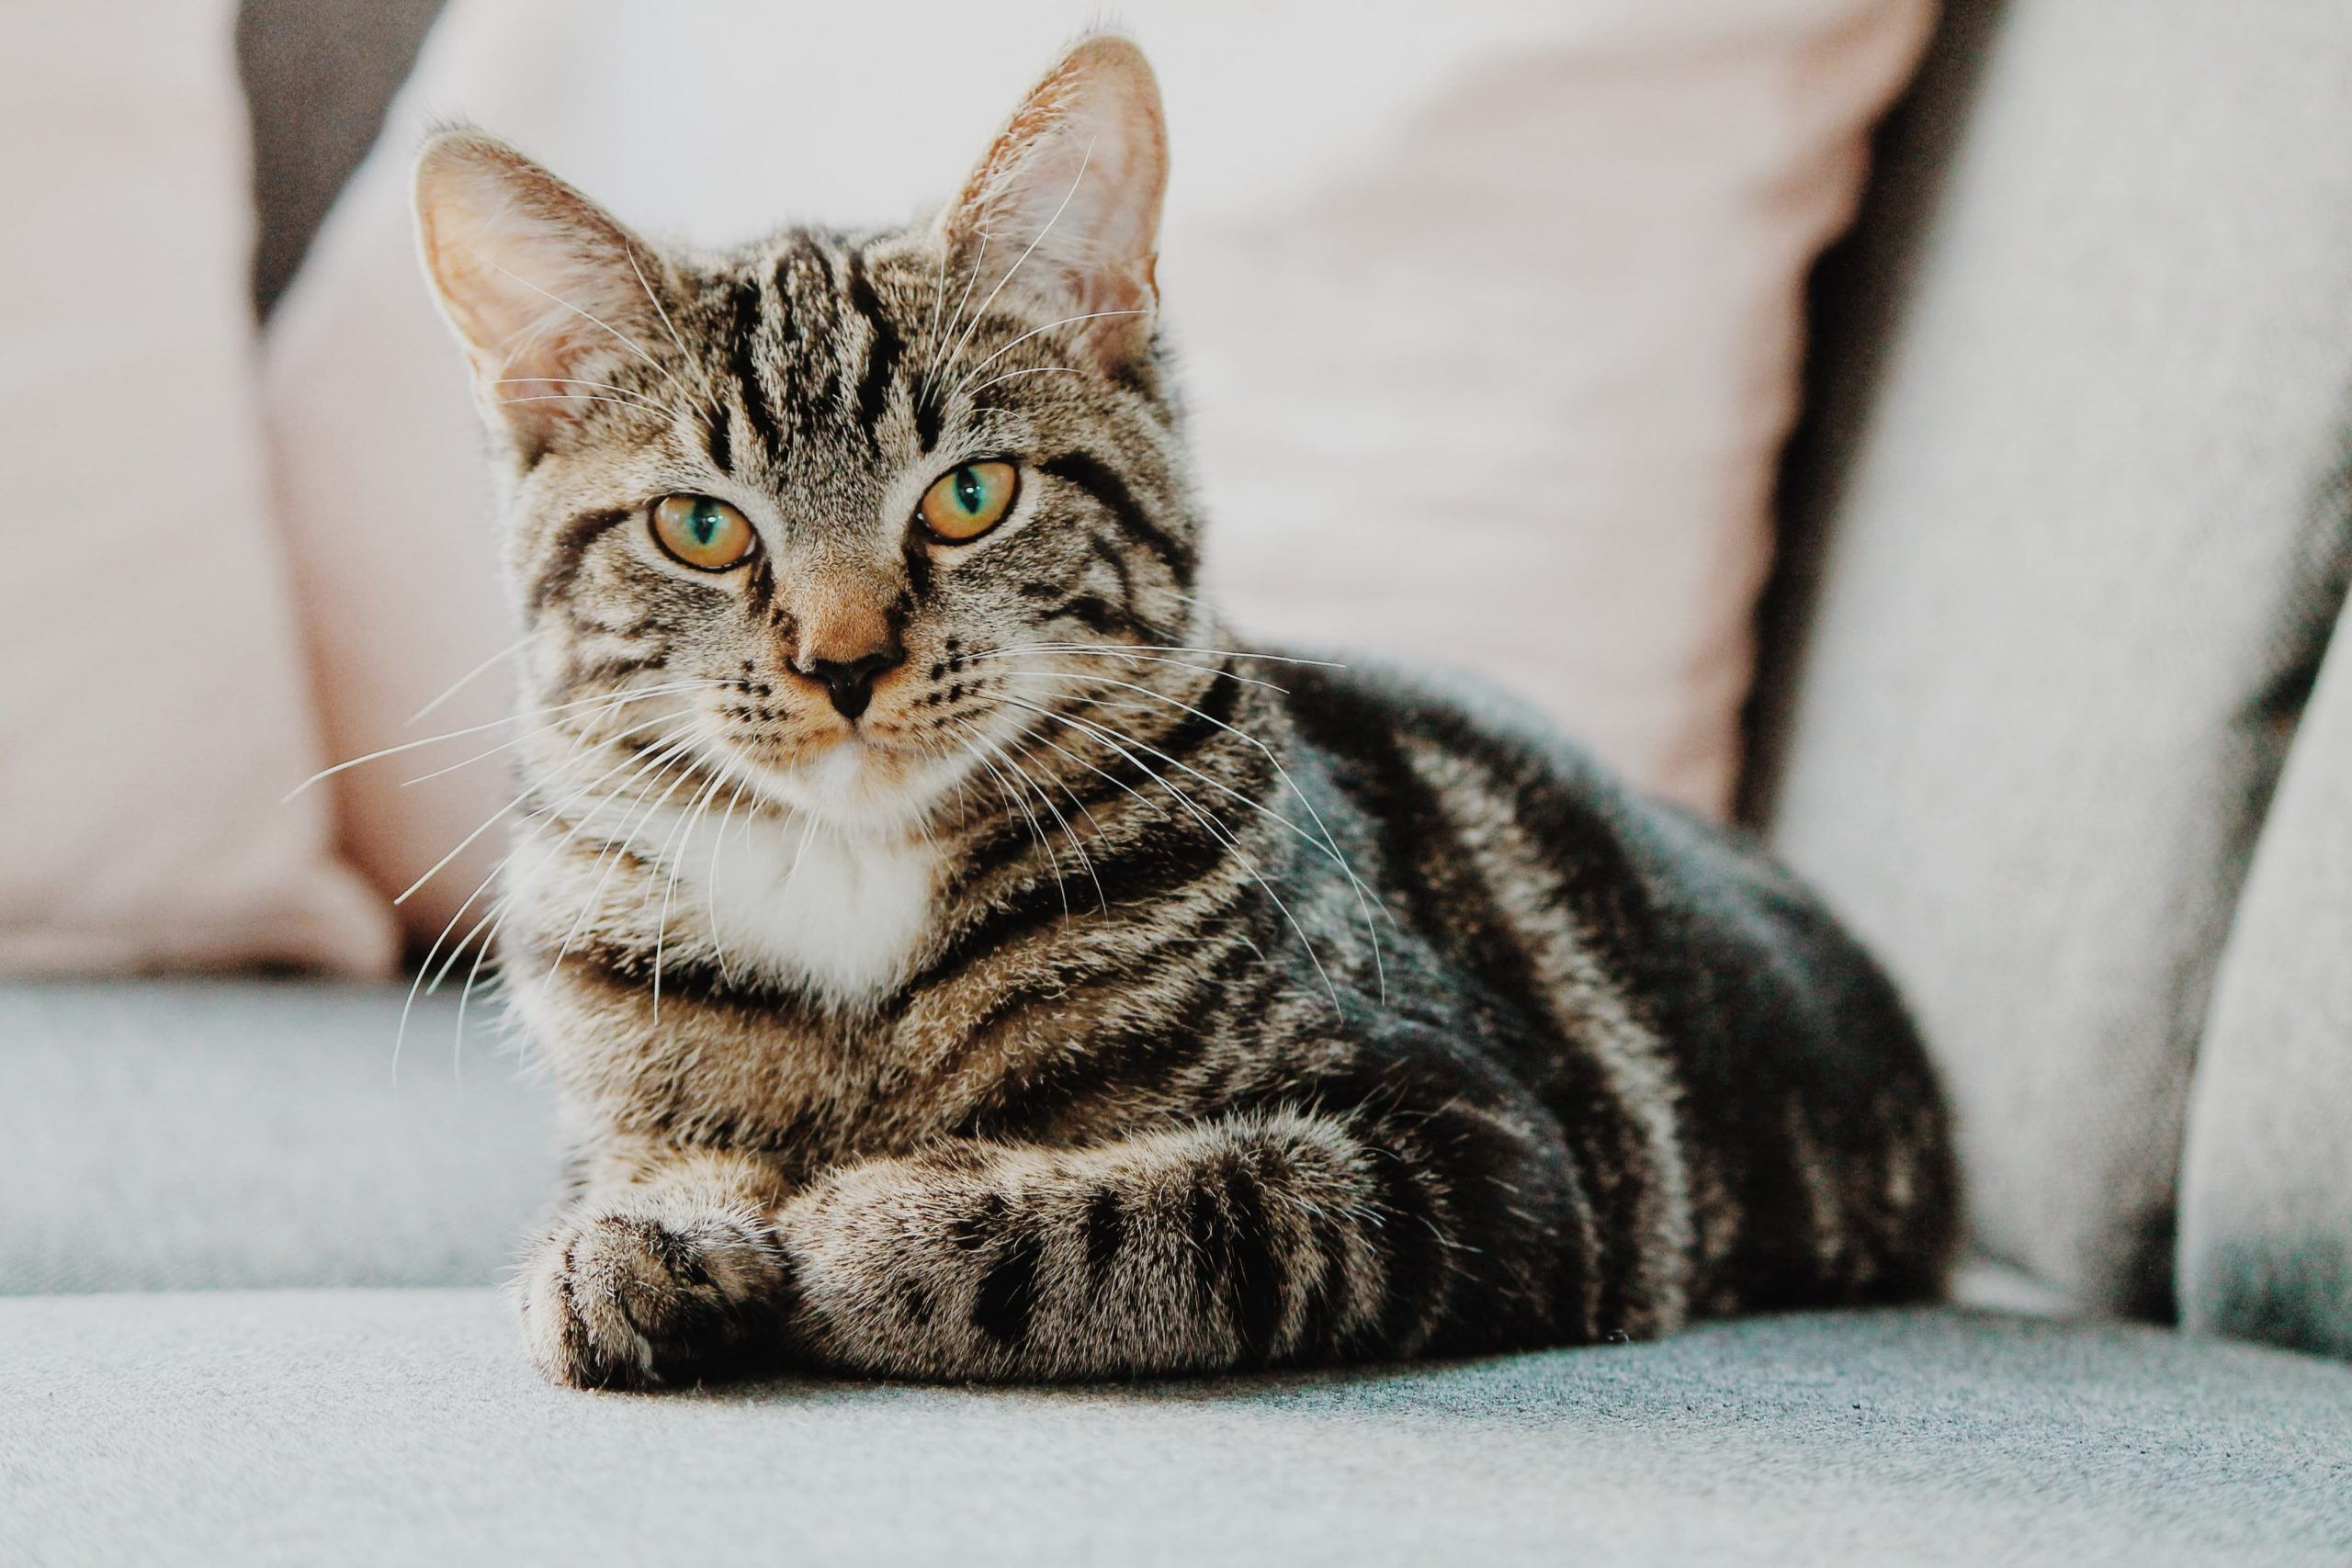 Scientists Identify A Gene That Forms Fur Patterns In Cats